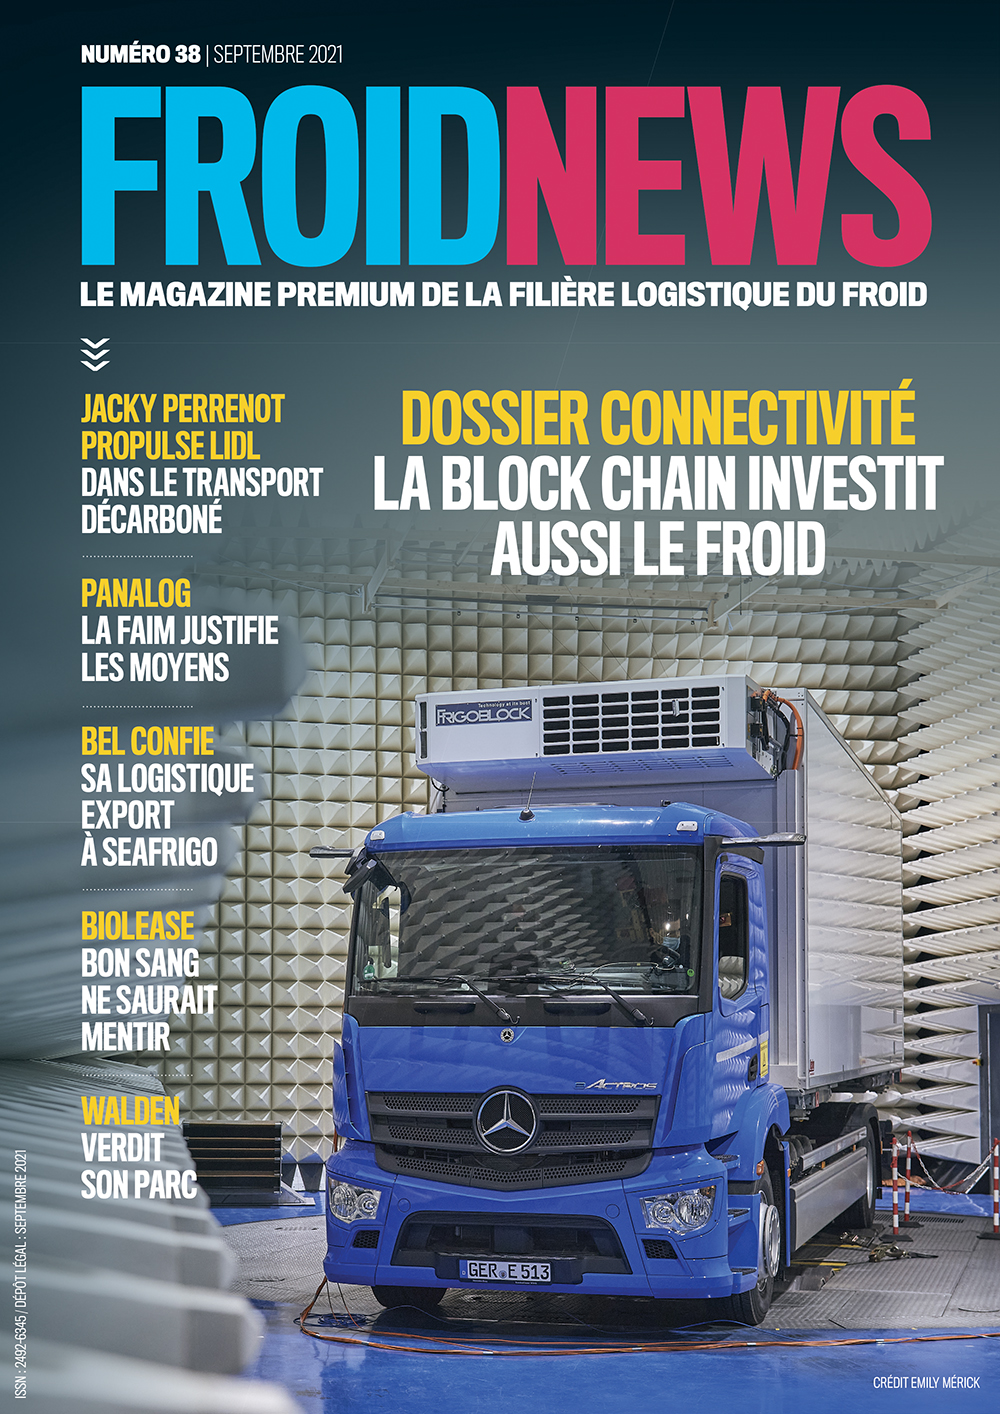 FROIDNEWS 38 SANS MARBRE.indd